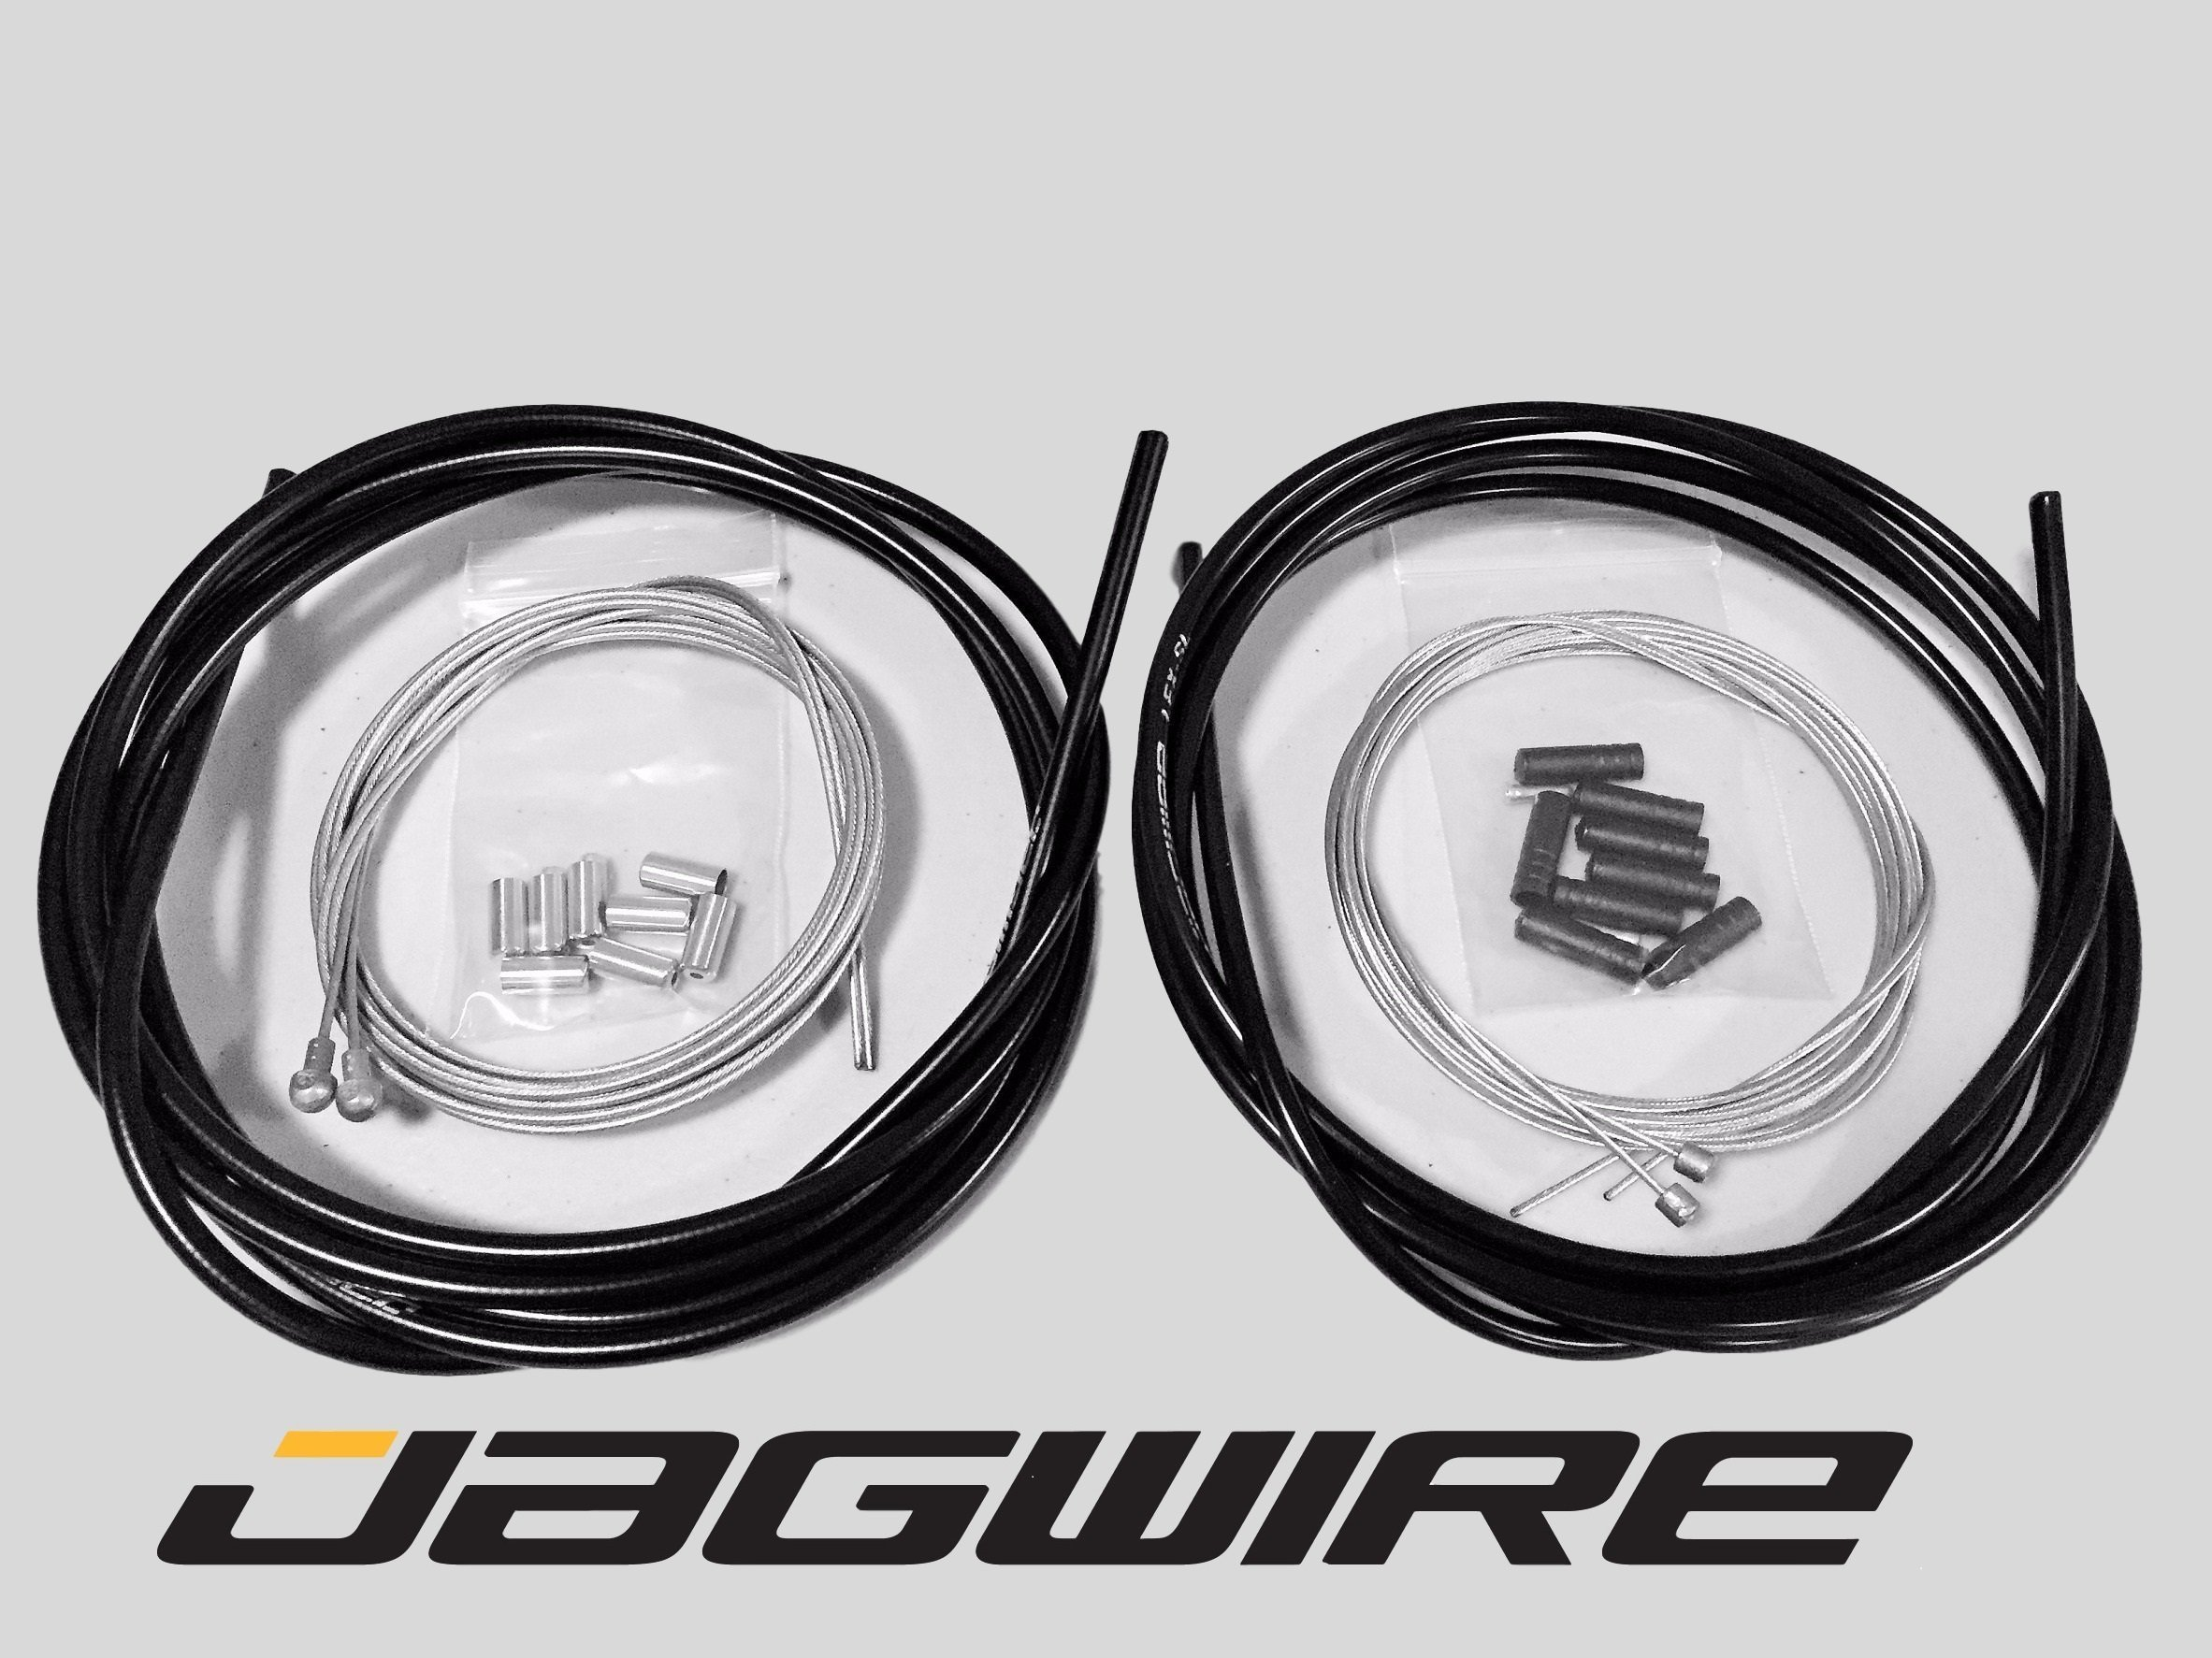 JAGWIRE ROAD SHOP KIT - Complete Brake & Shifter Cable and Housing Kit- Black - SRAM/Shimano